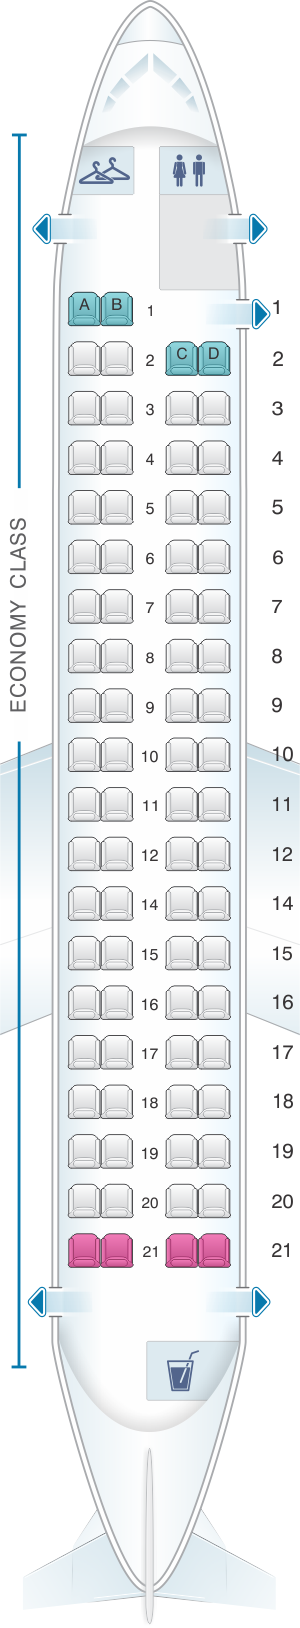 Seat map for Flybe Bombardier Q400